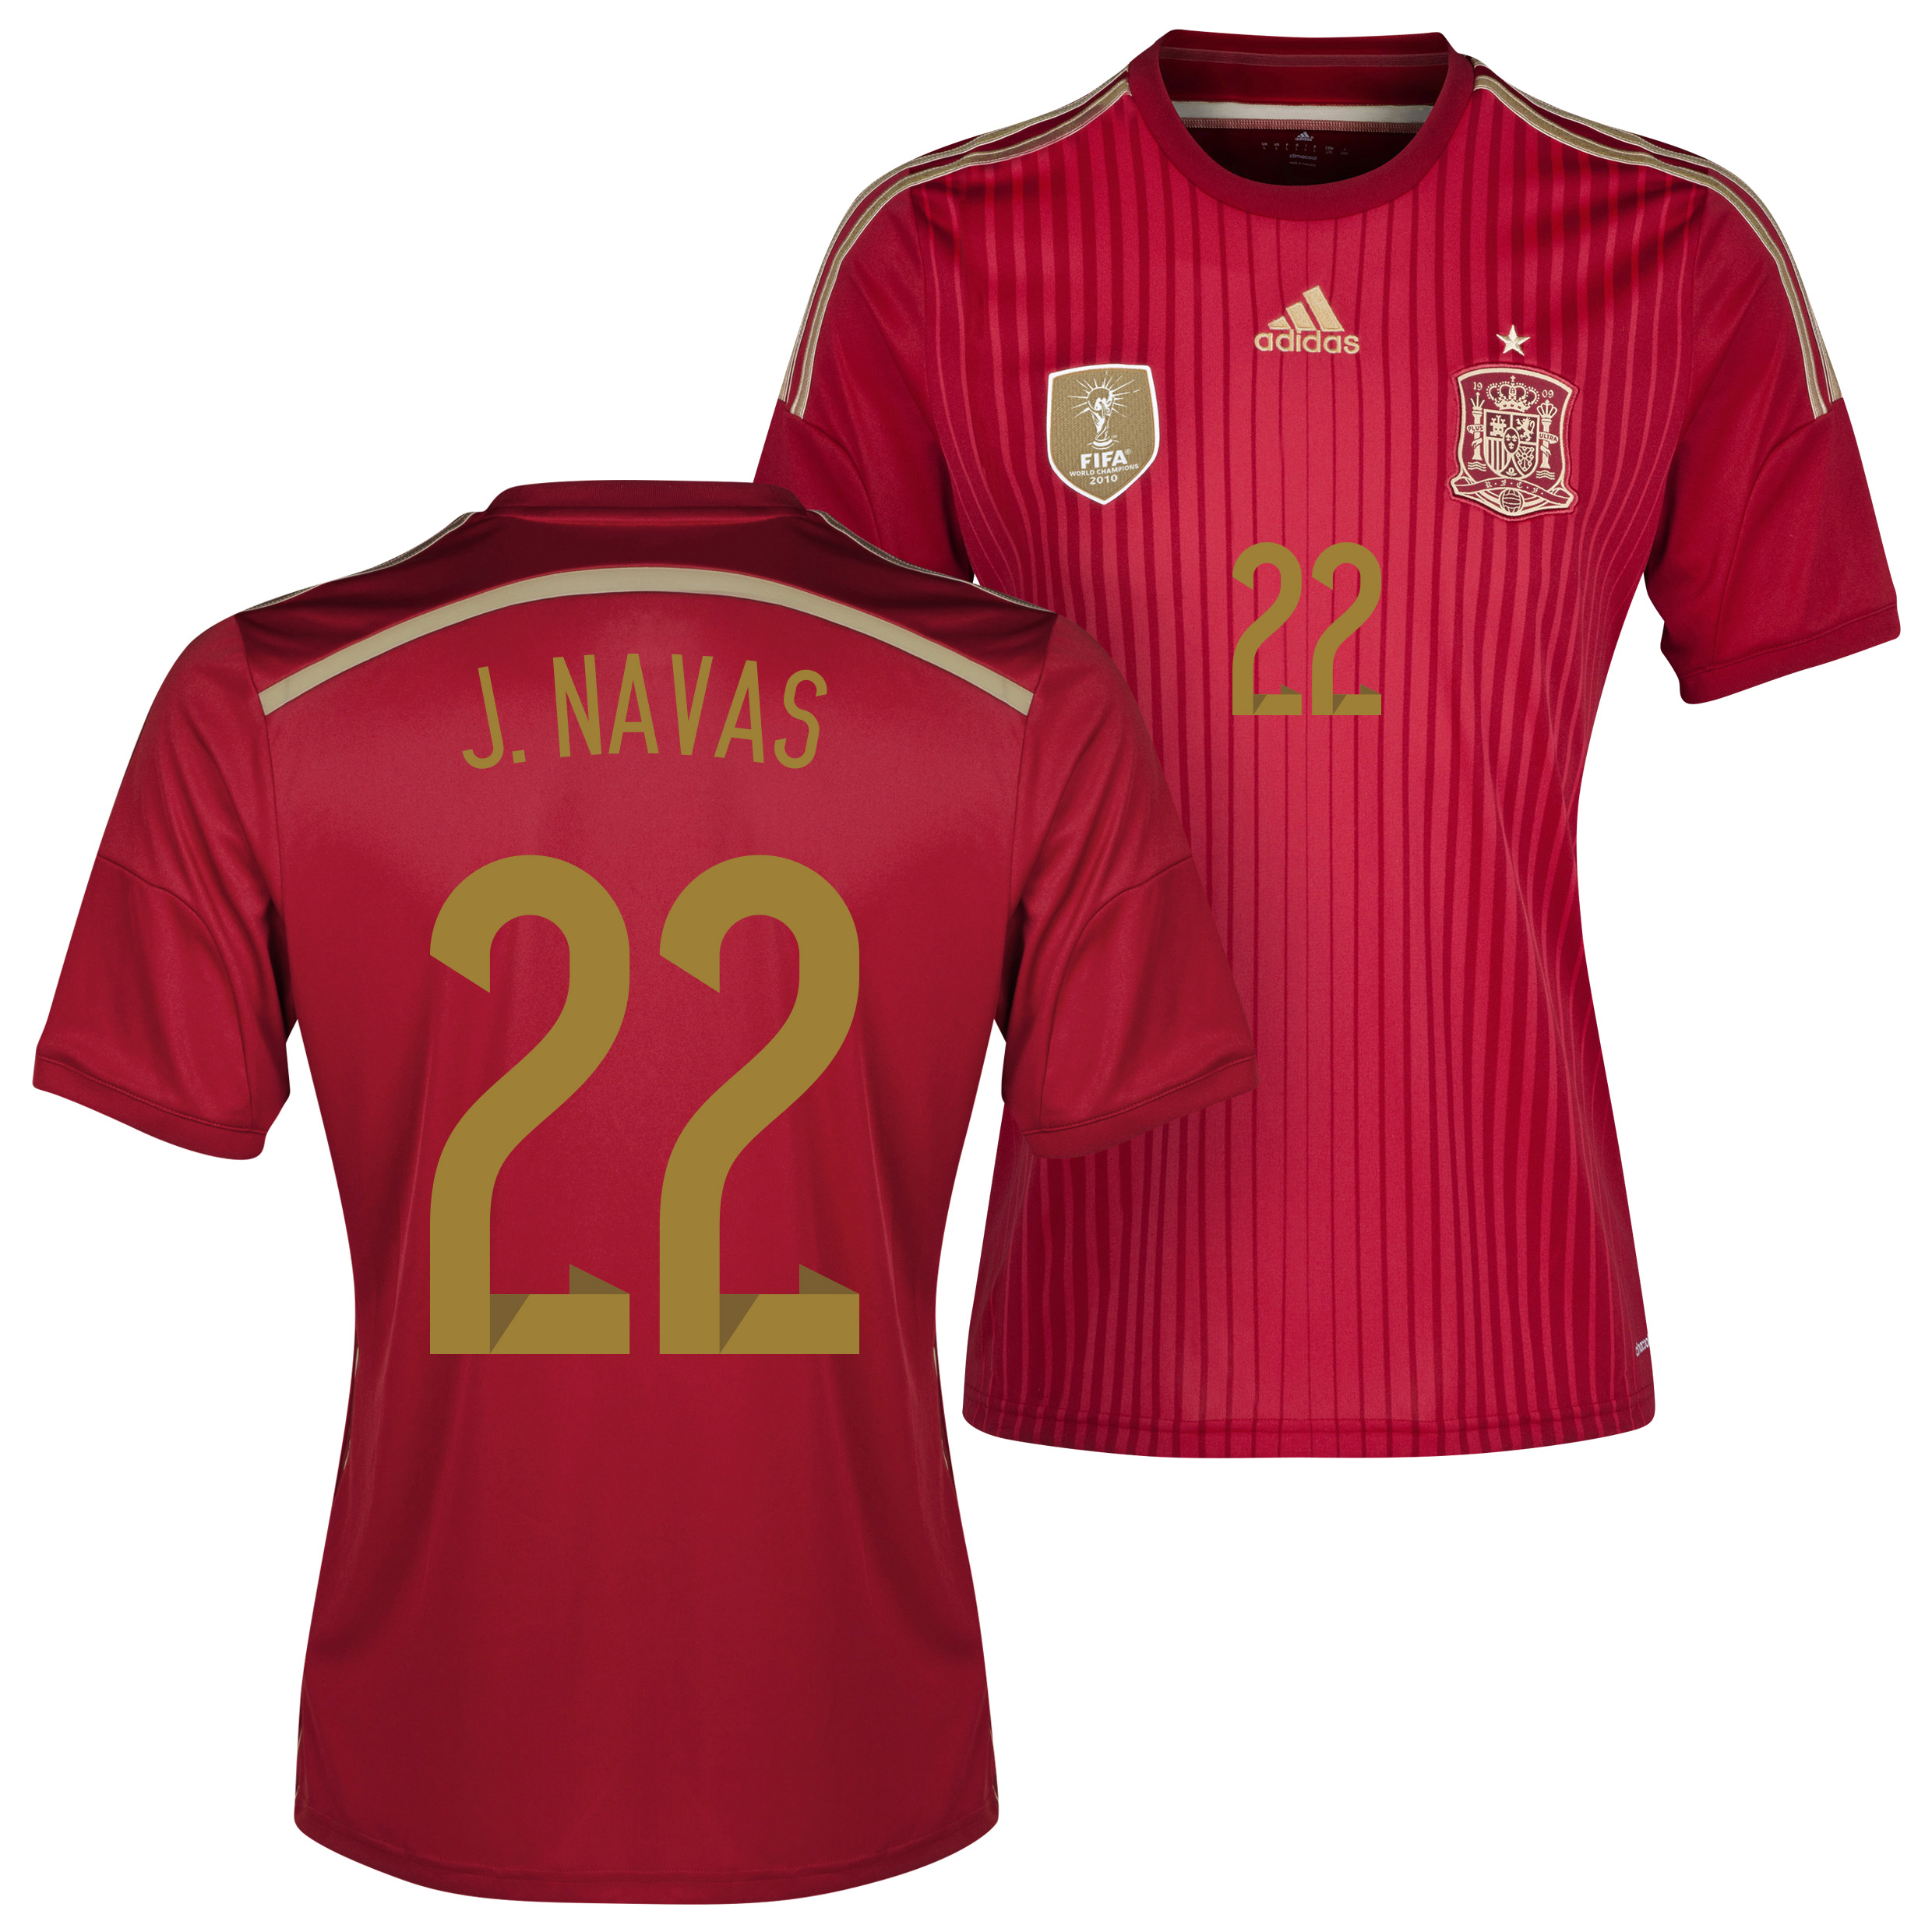 Spain Home Shirt 2013/15 with J. Navas 22 printing